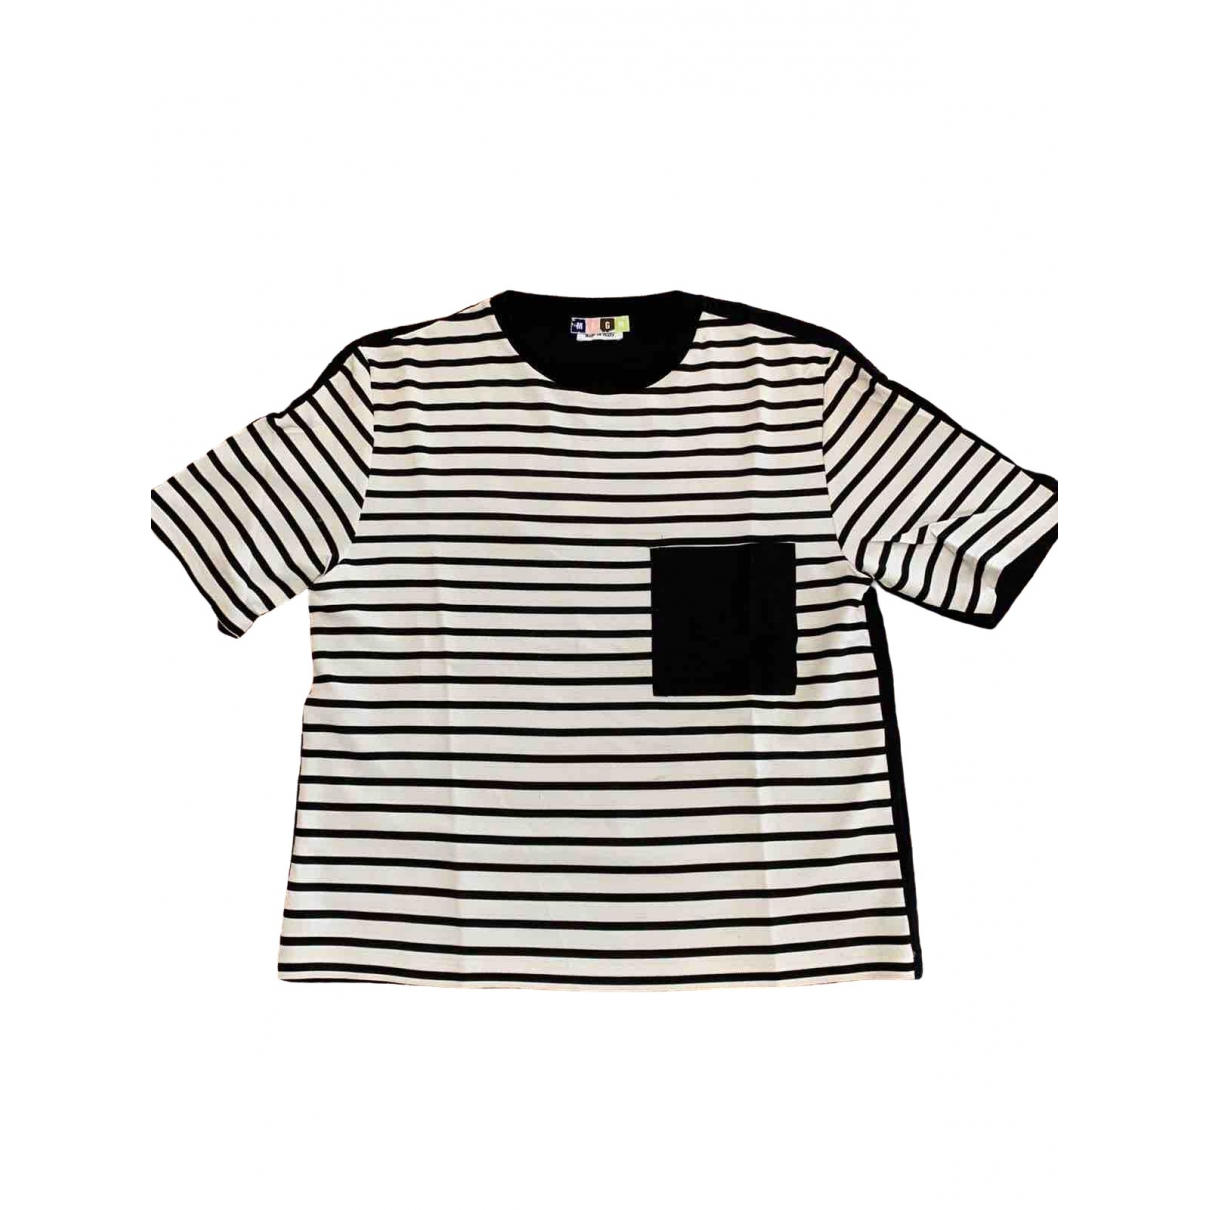 Msgm - Tee shirts   pour homme - blanc